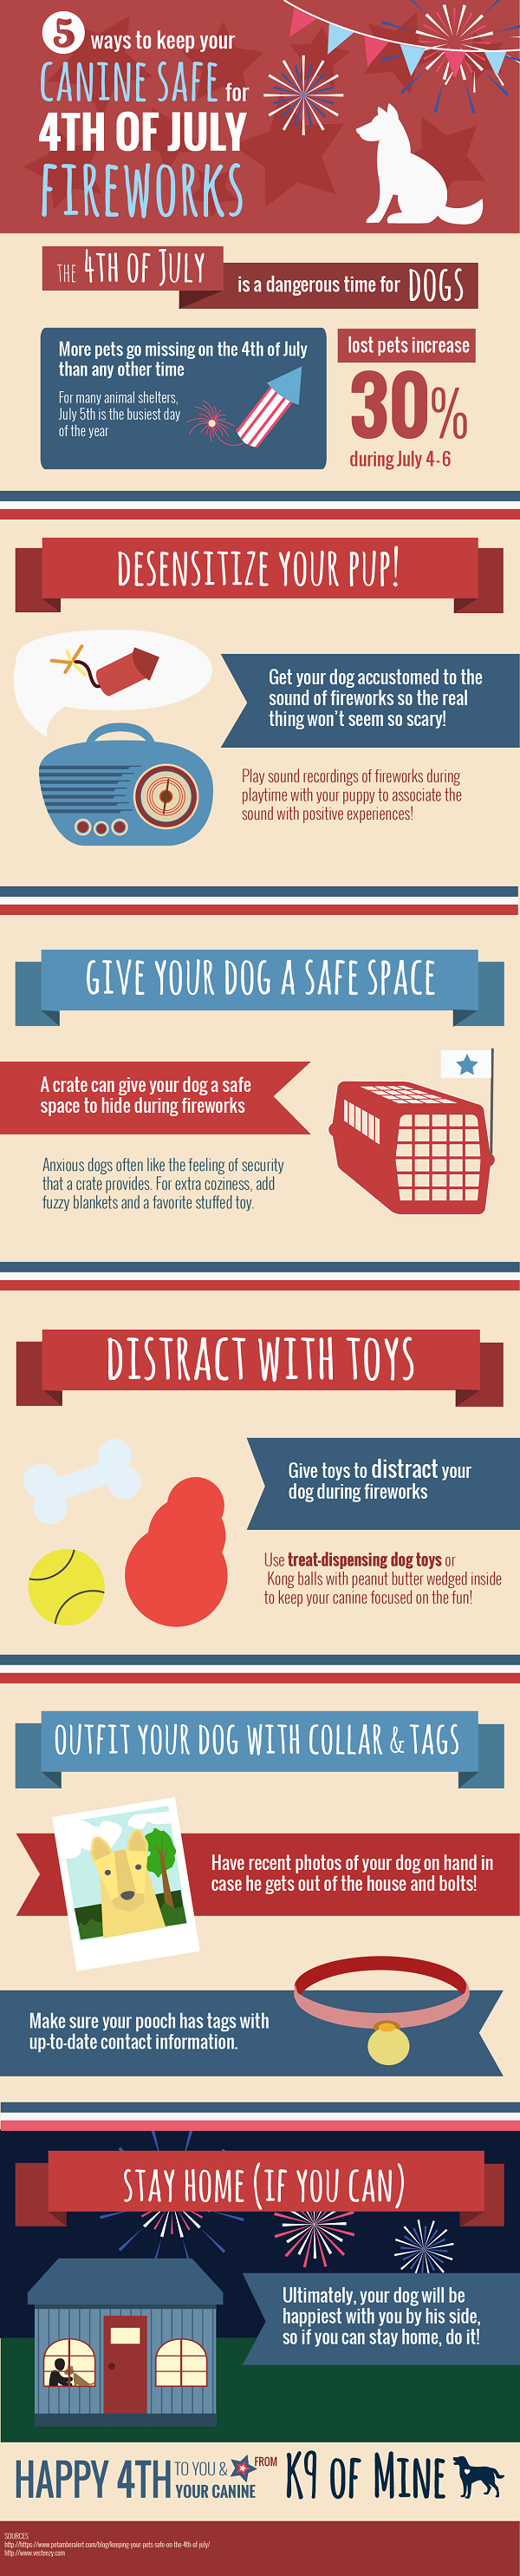 5 Ways To Keep Your Dogs Safe 4th of July